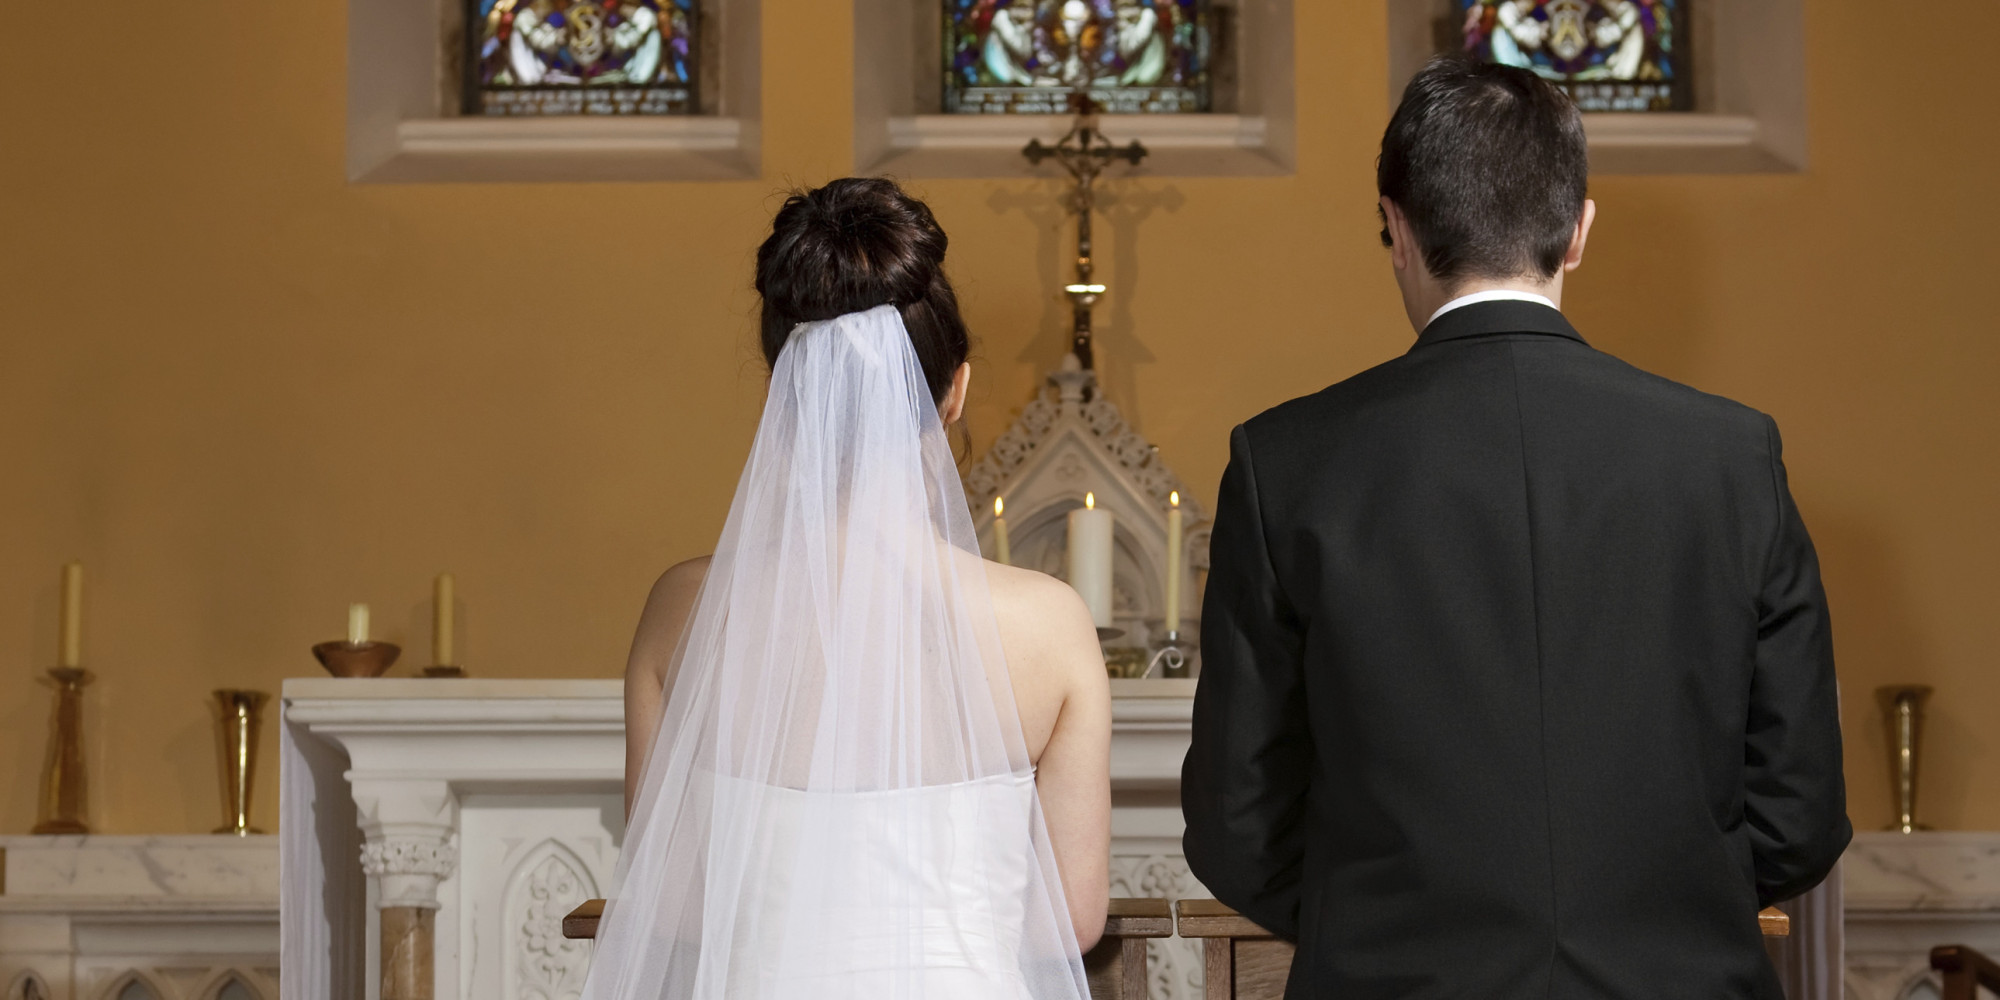 bridal veil catholic women dating site How to choose a wedding veil  a veil is one of the most defining aspects of your bridal appearance historically a veil was  pear-shaped women.